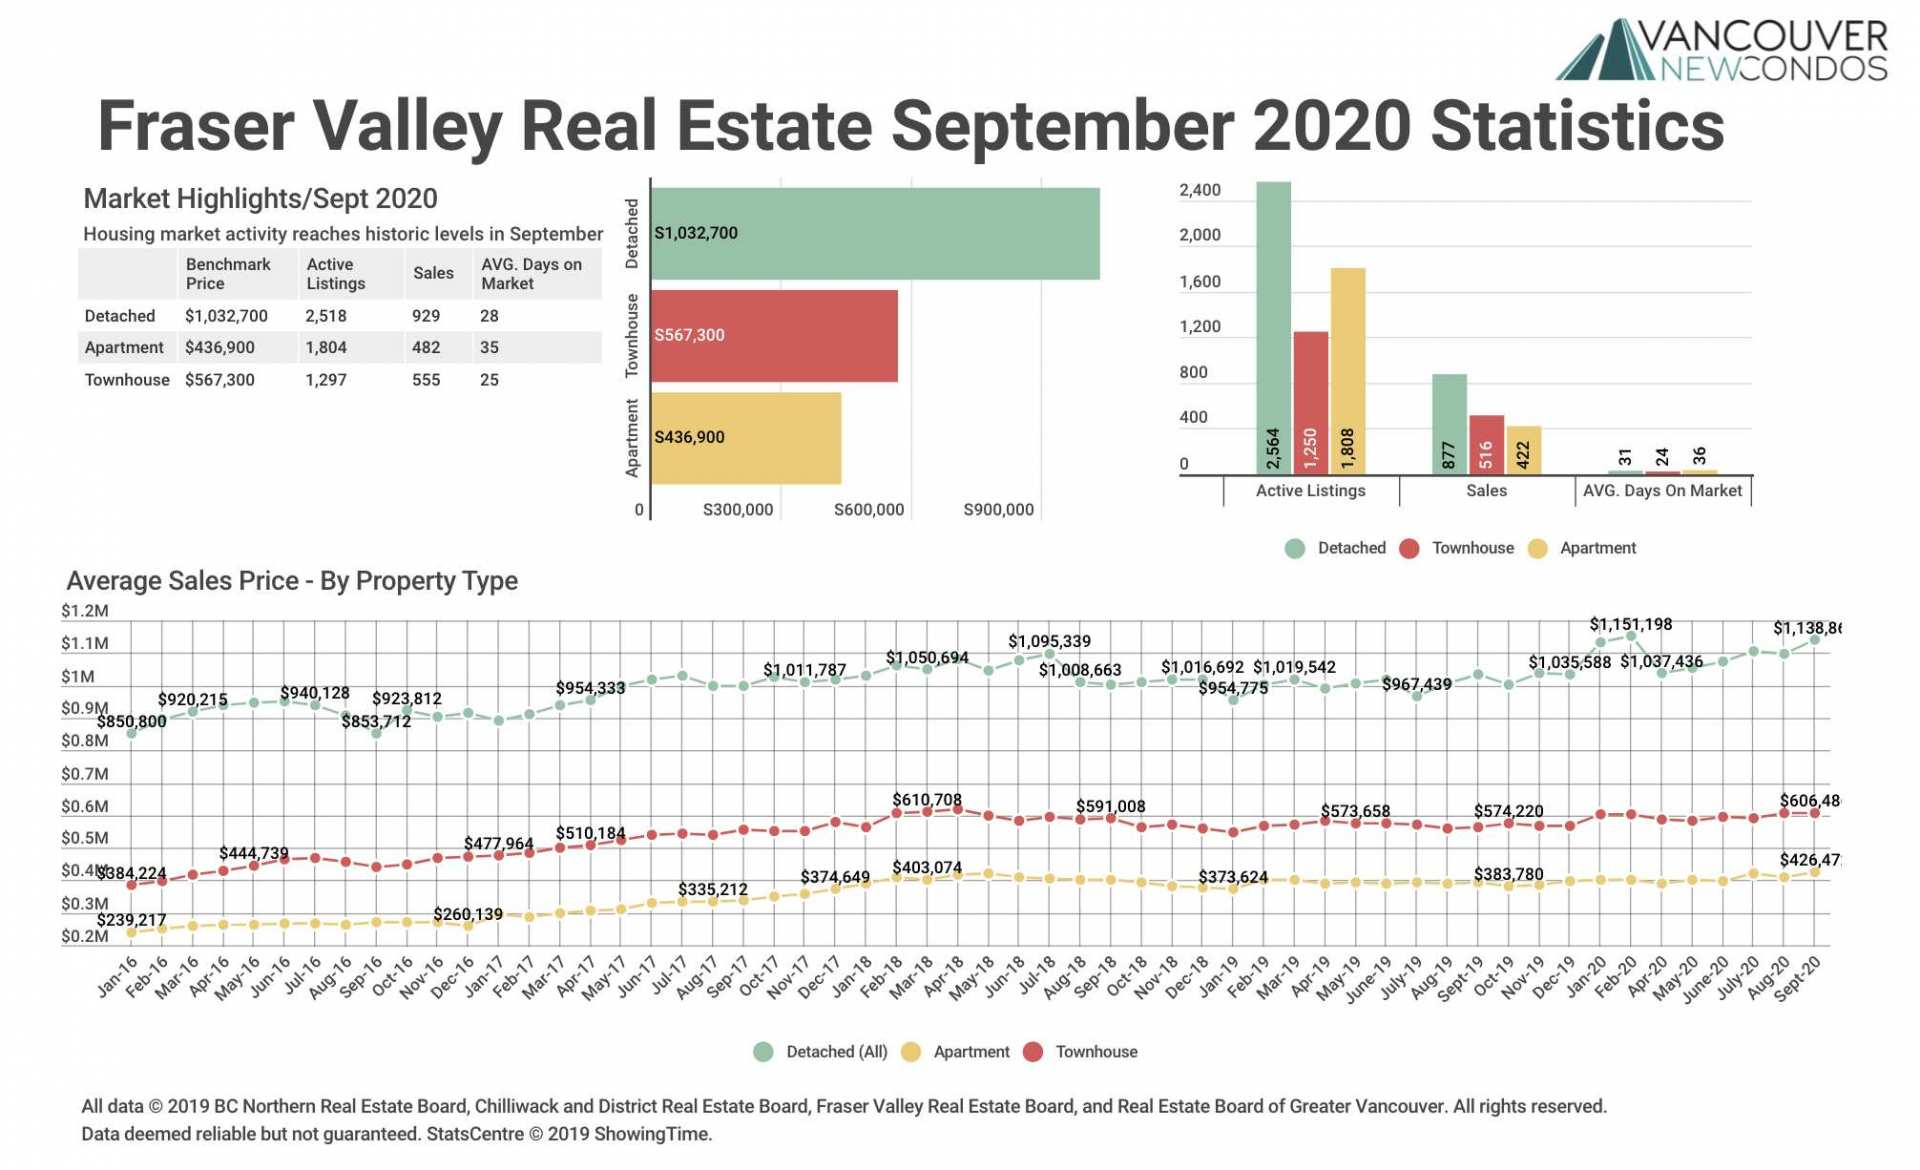 FVREB Sept 2020 Stats Graph